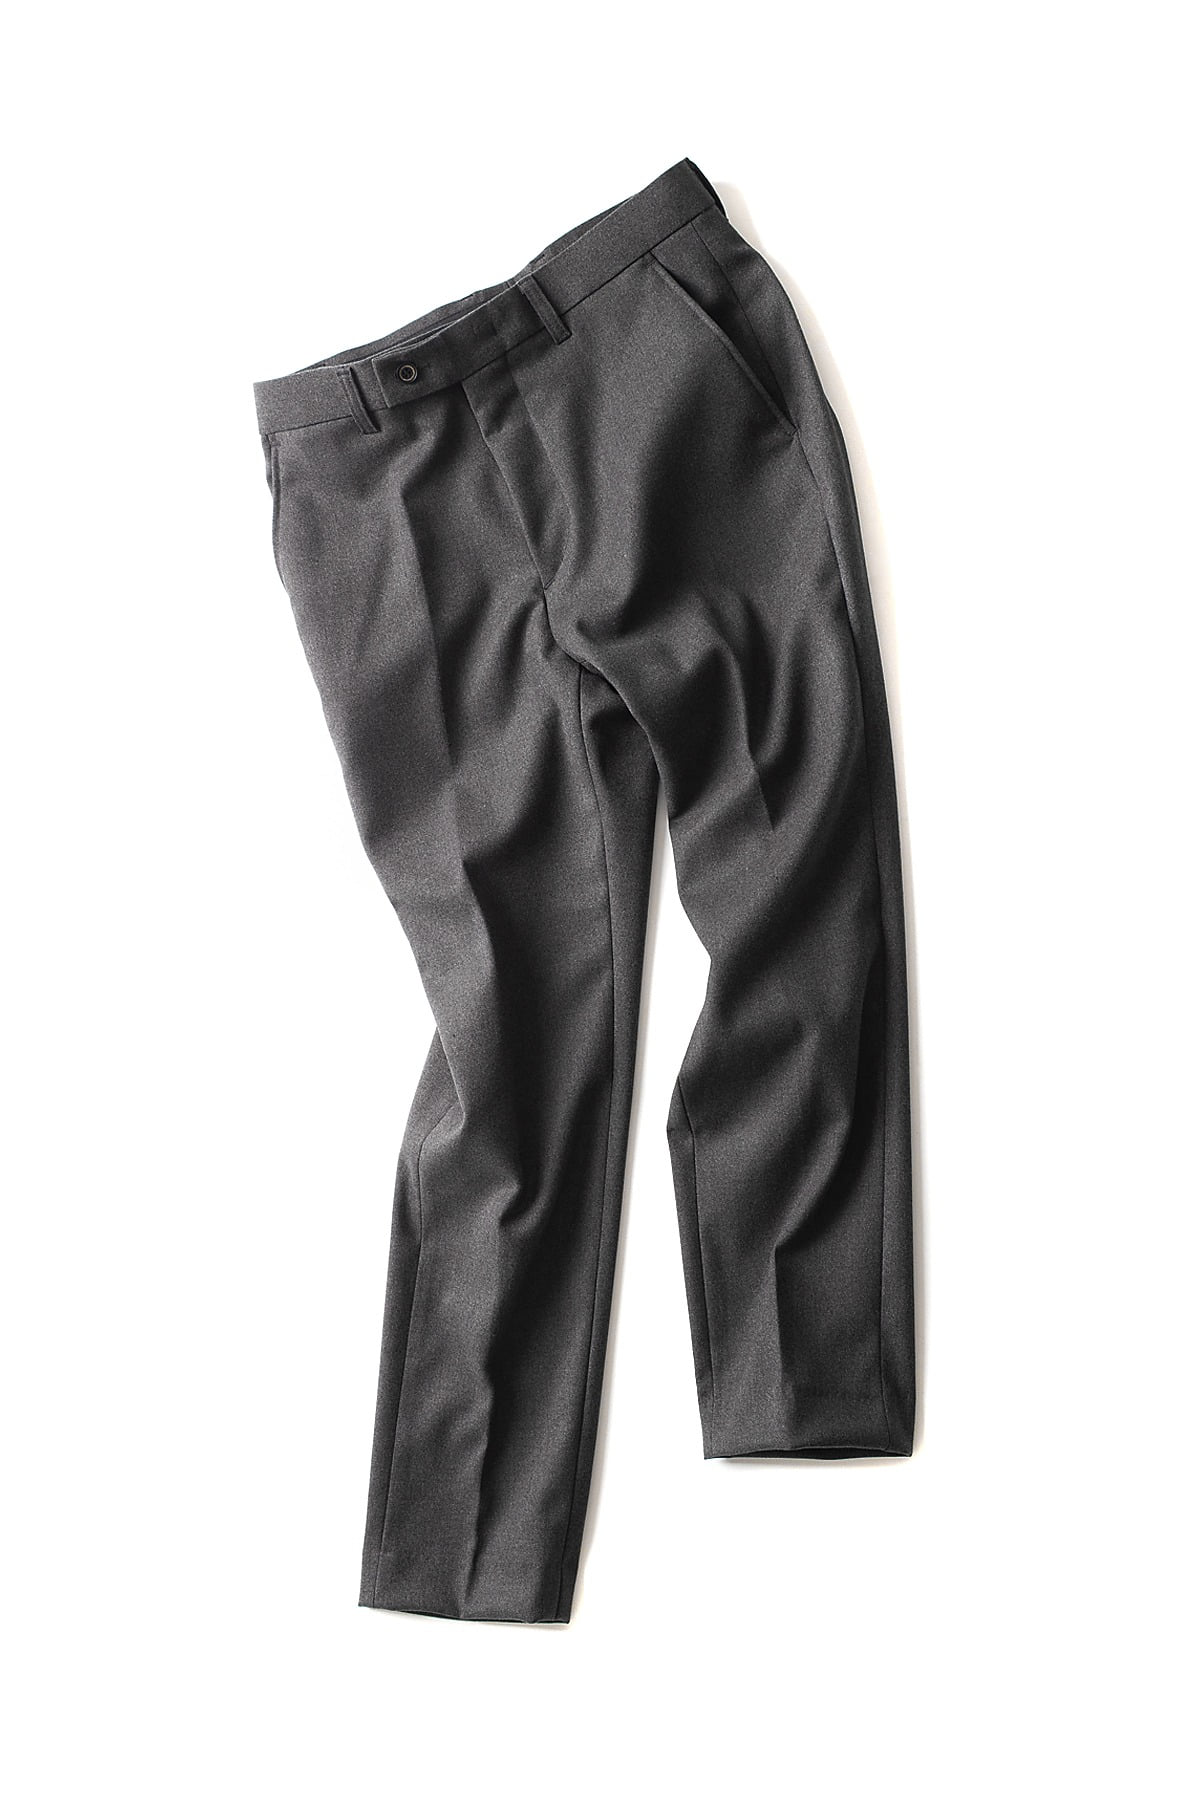 BIRTHDAYSUIT : Daily Suit Pants (Charcoal)